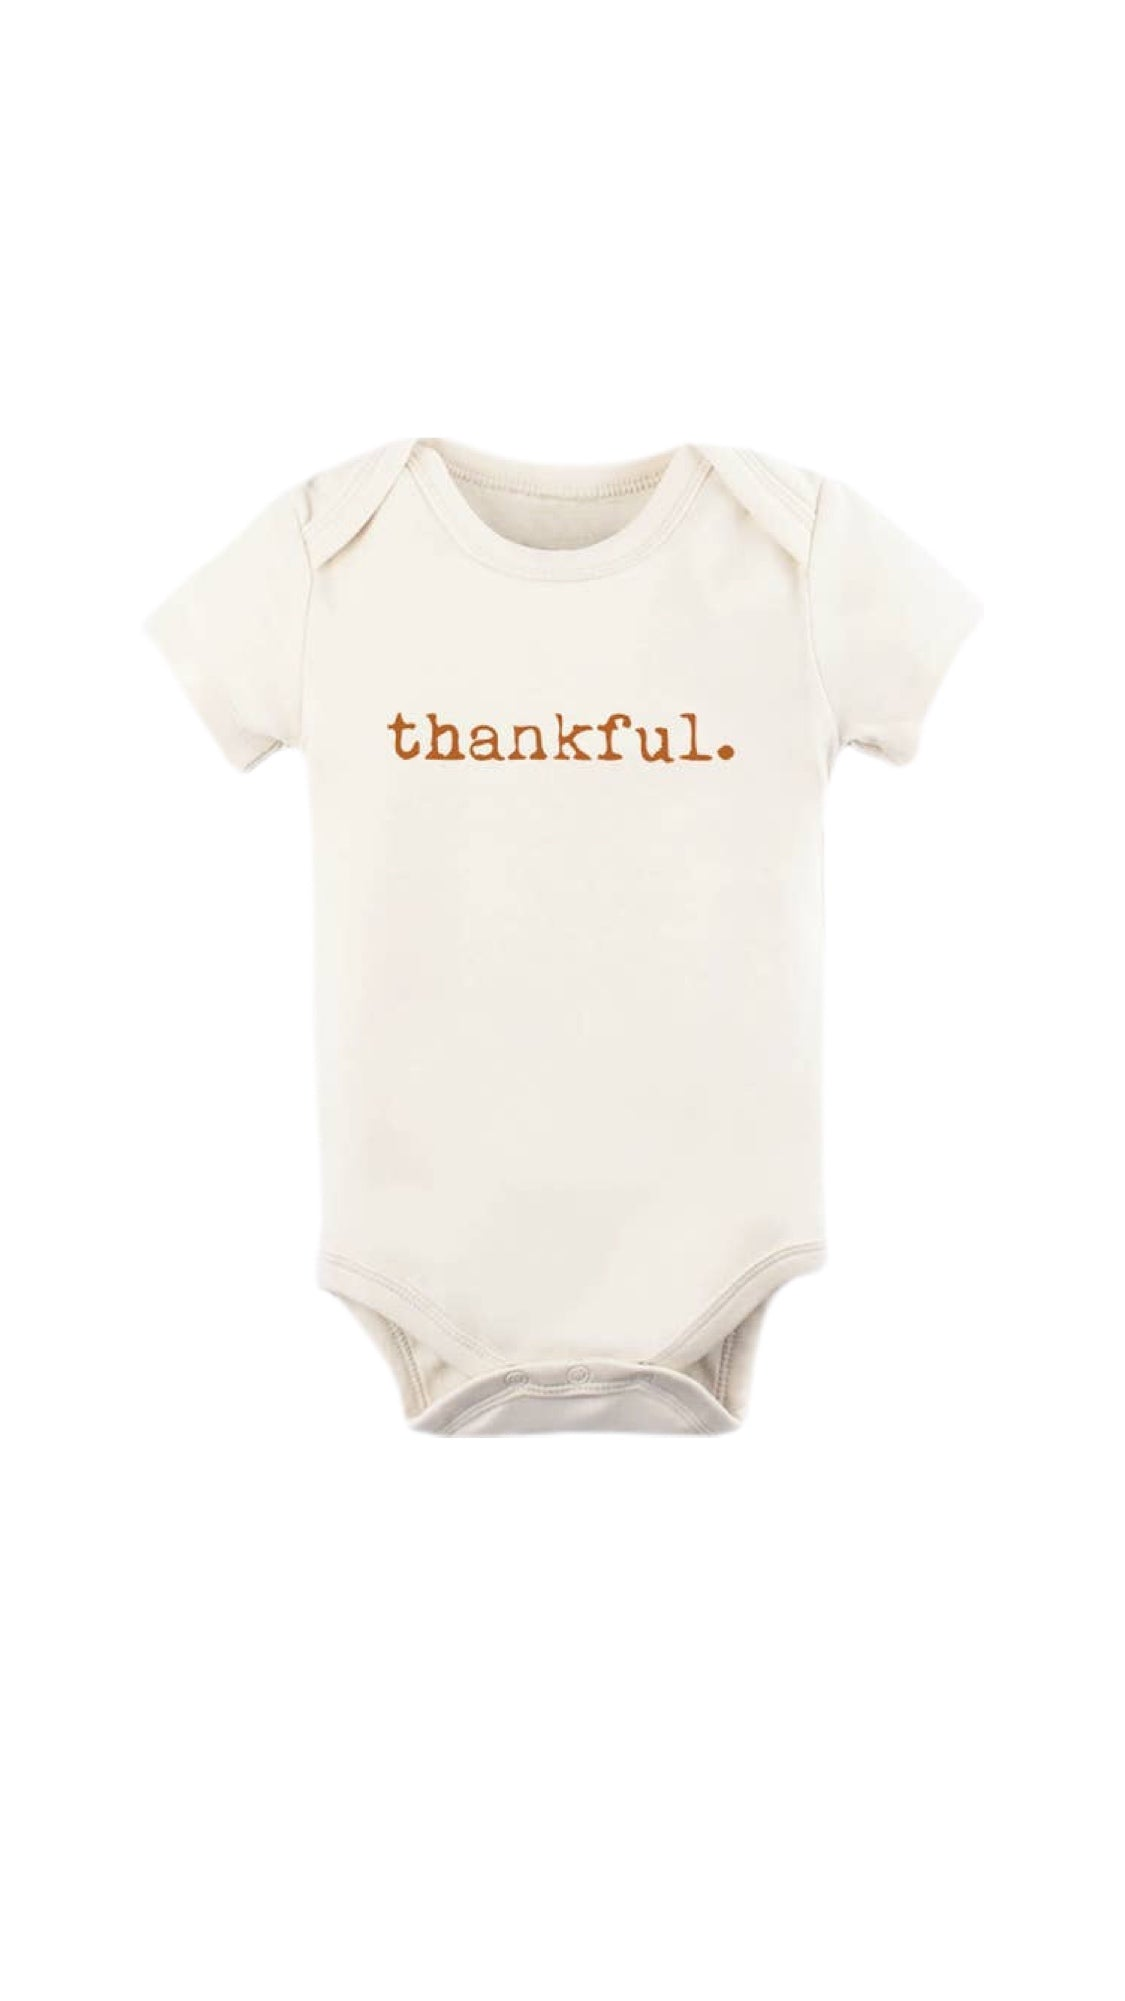 Thankful - Short Sleeve Bodysuit